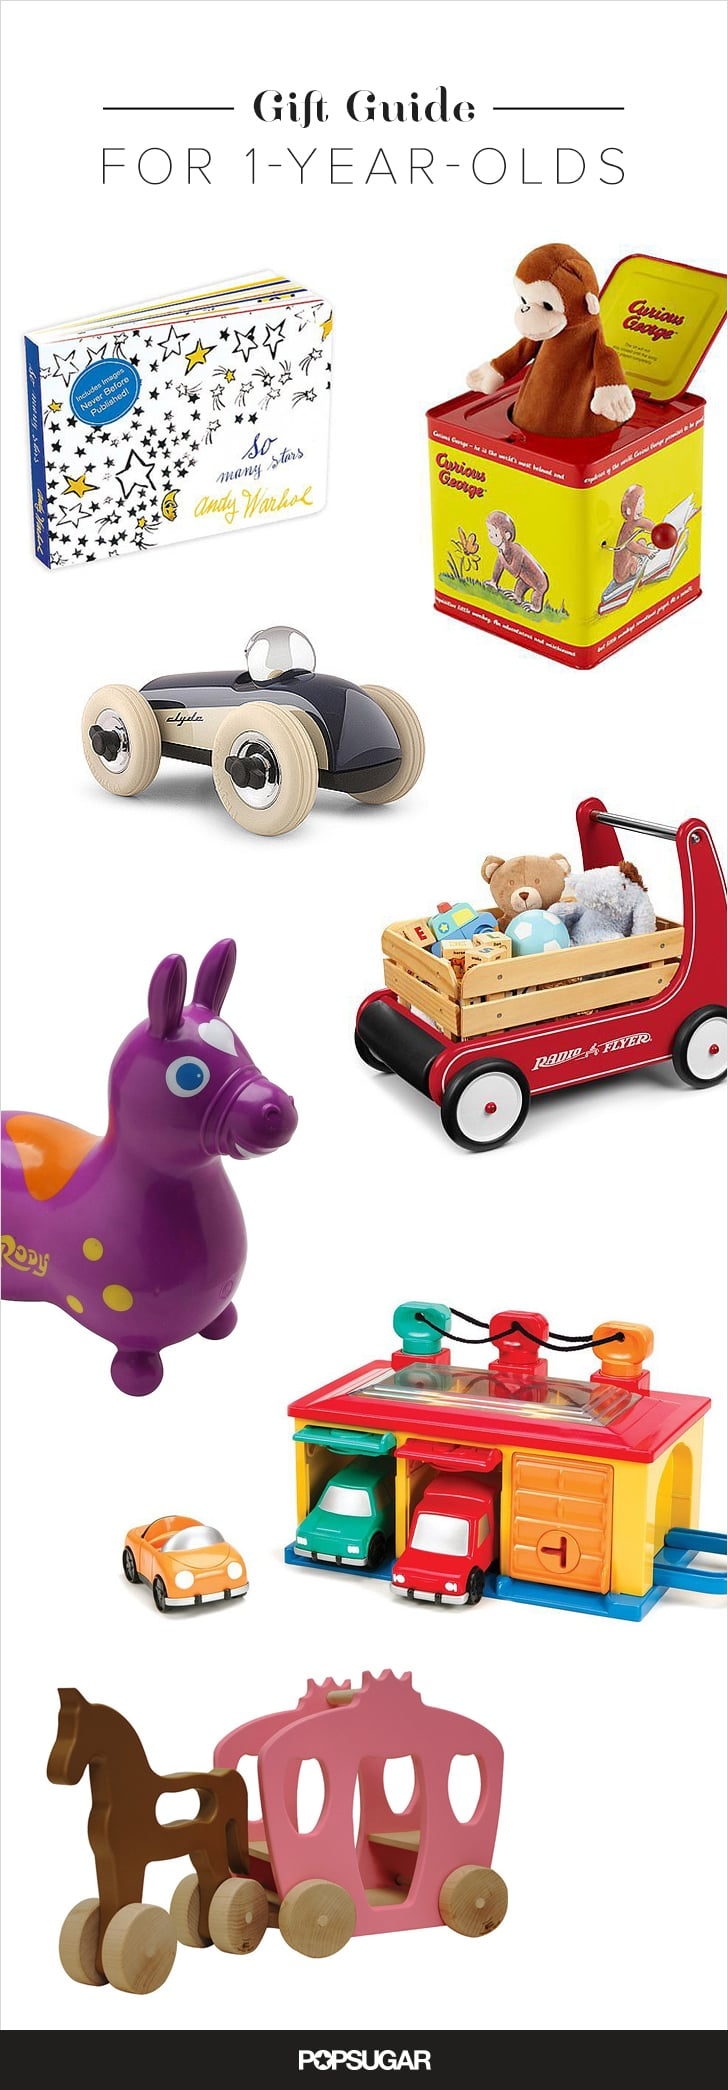 23 Great Gift Ideas For 1-Year-Olds